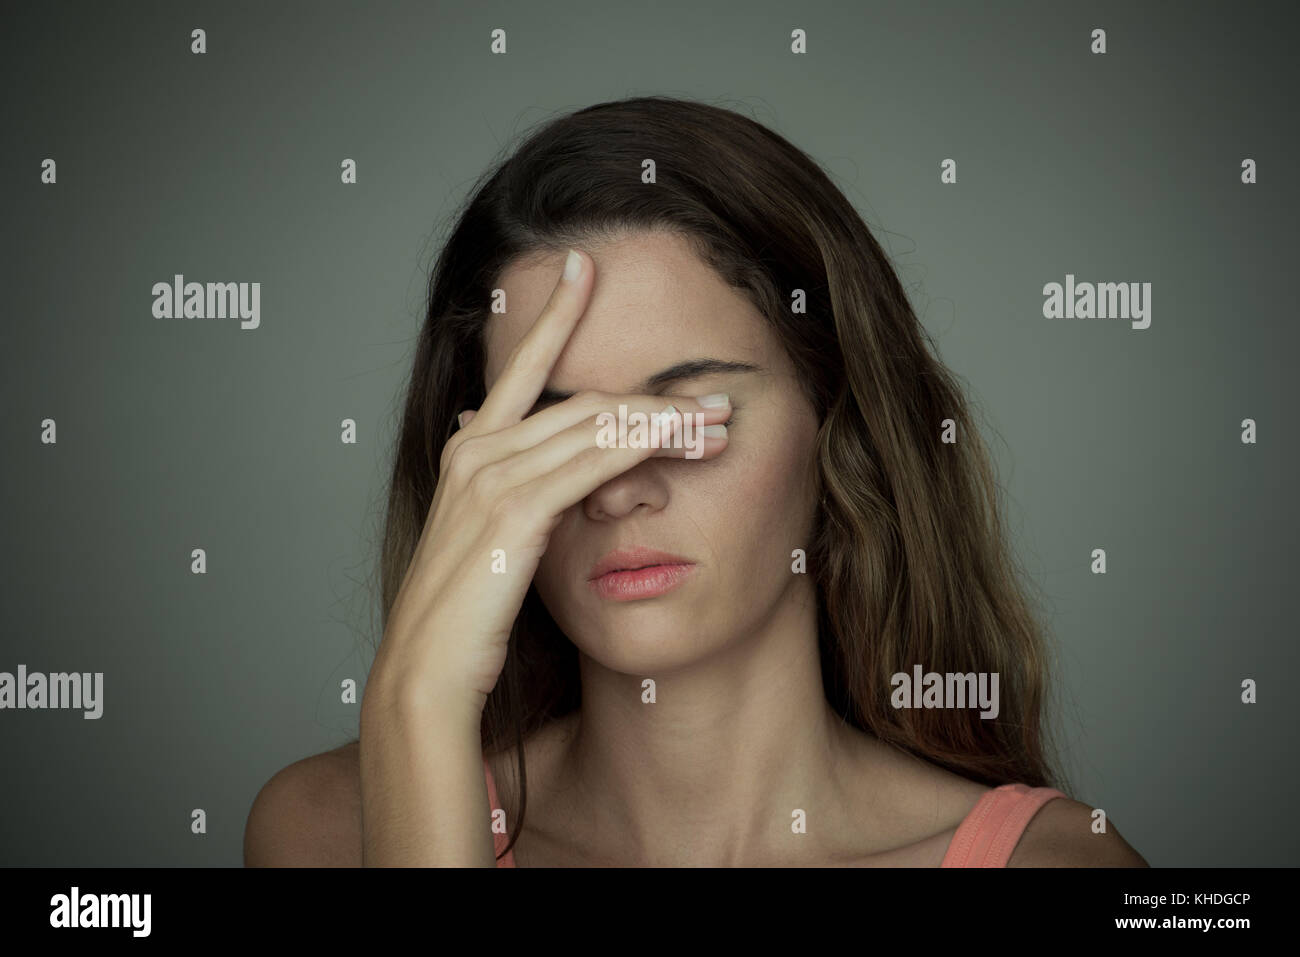 Young woman covering her eyes with one hand Stock Photo